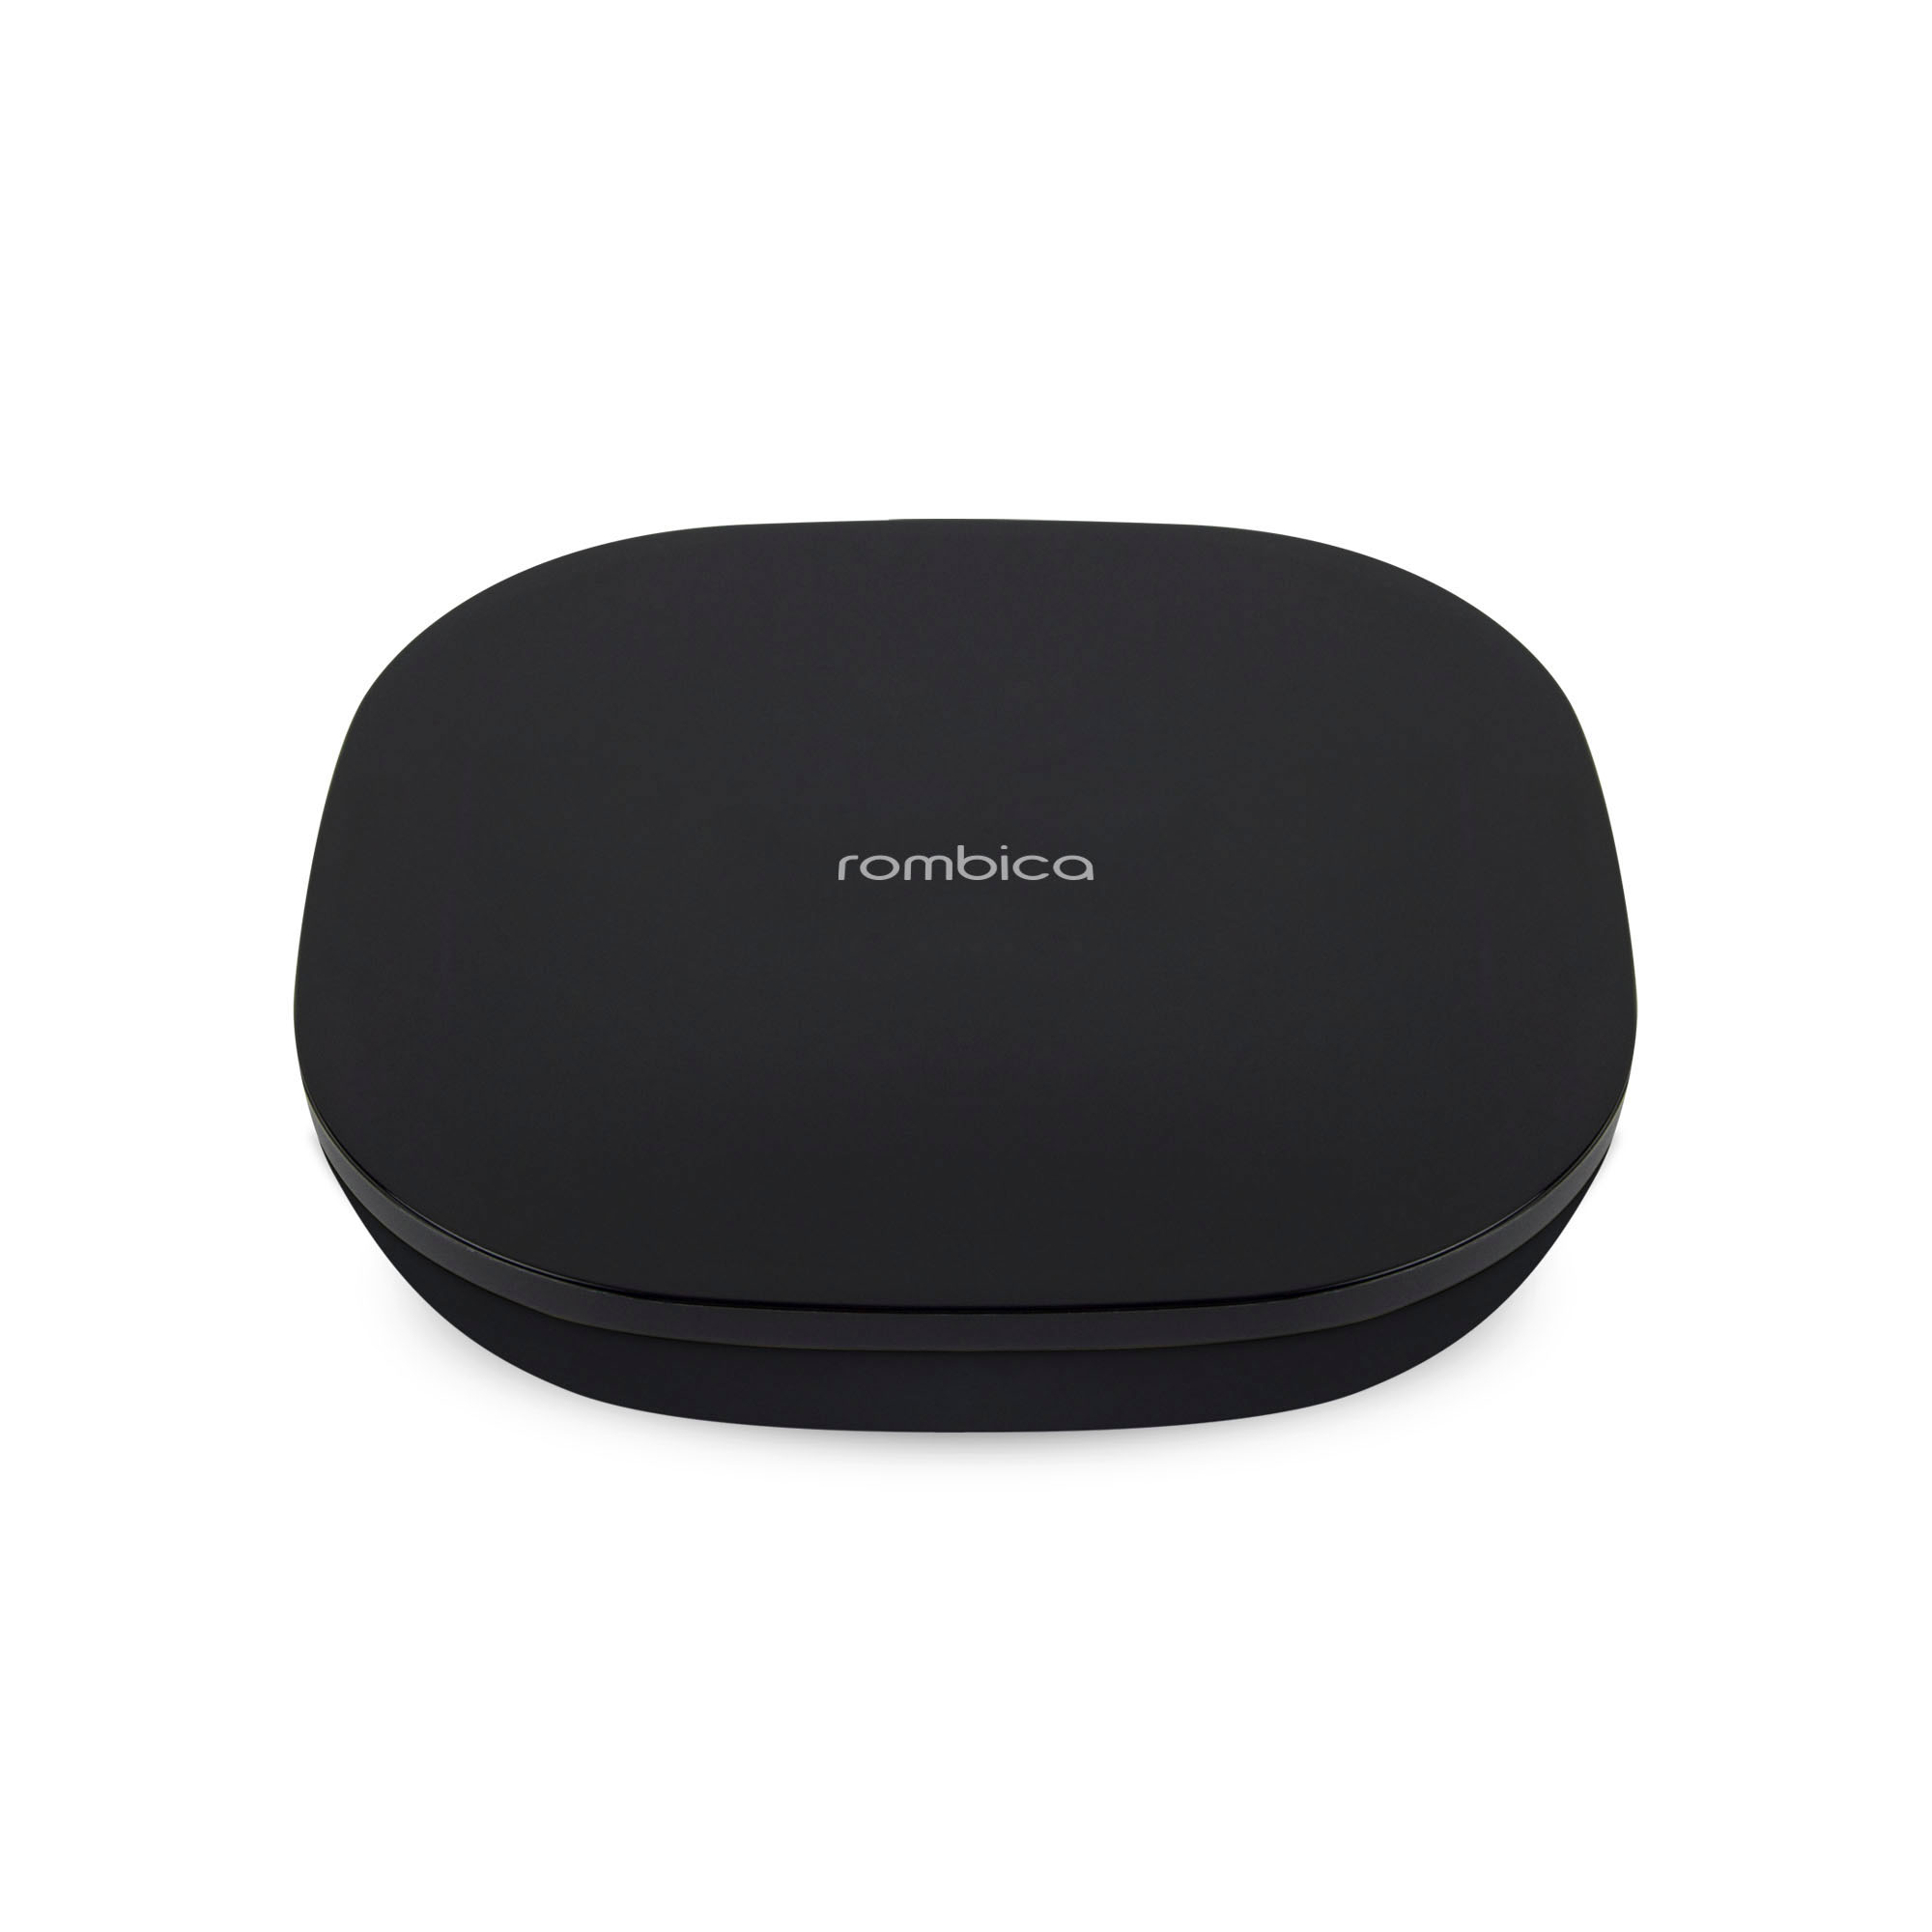 Rombica Smart Box G2